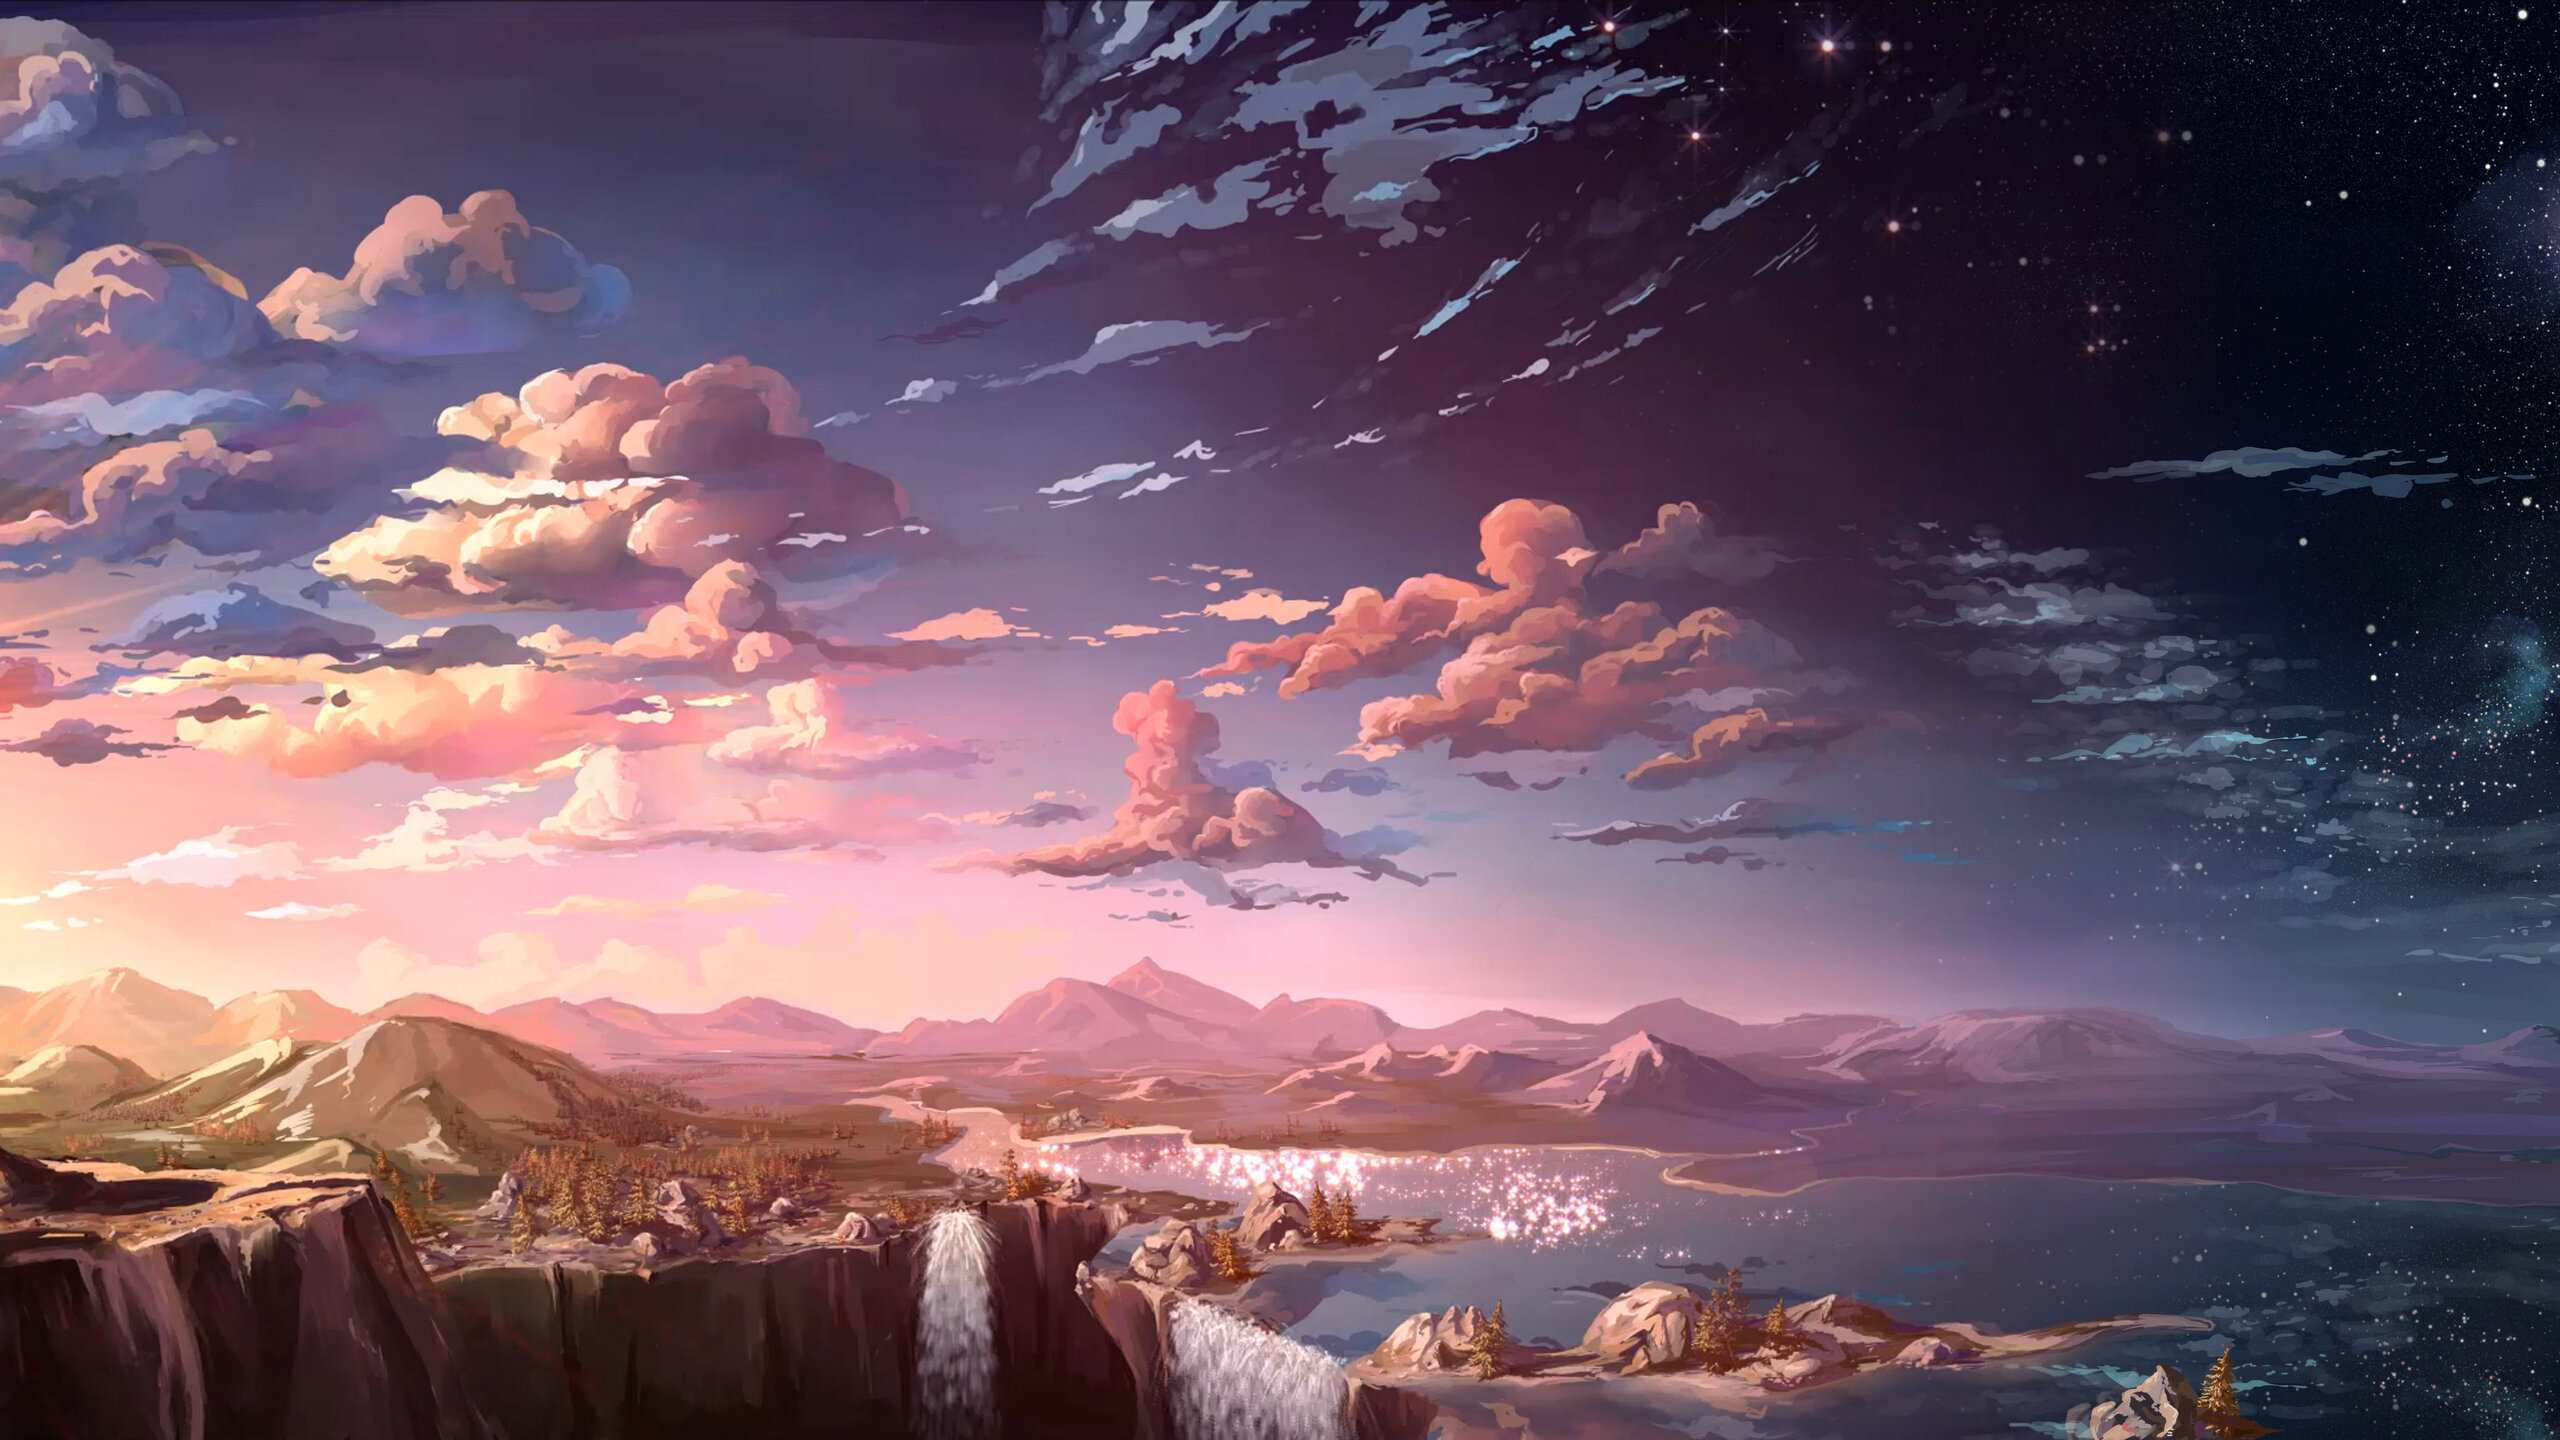 2560x1440 Anime Landscape Waterfall Cloud 5k 1440p Resolution Hd 4k Wallpapers Images Backgrounds Photos And Pictures